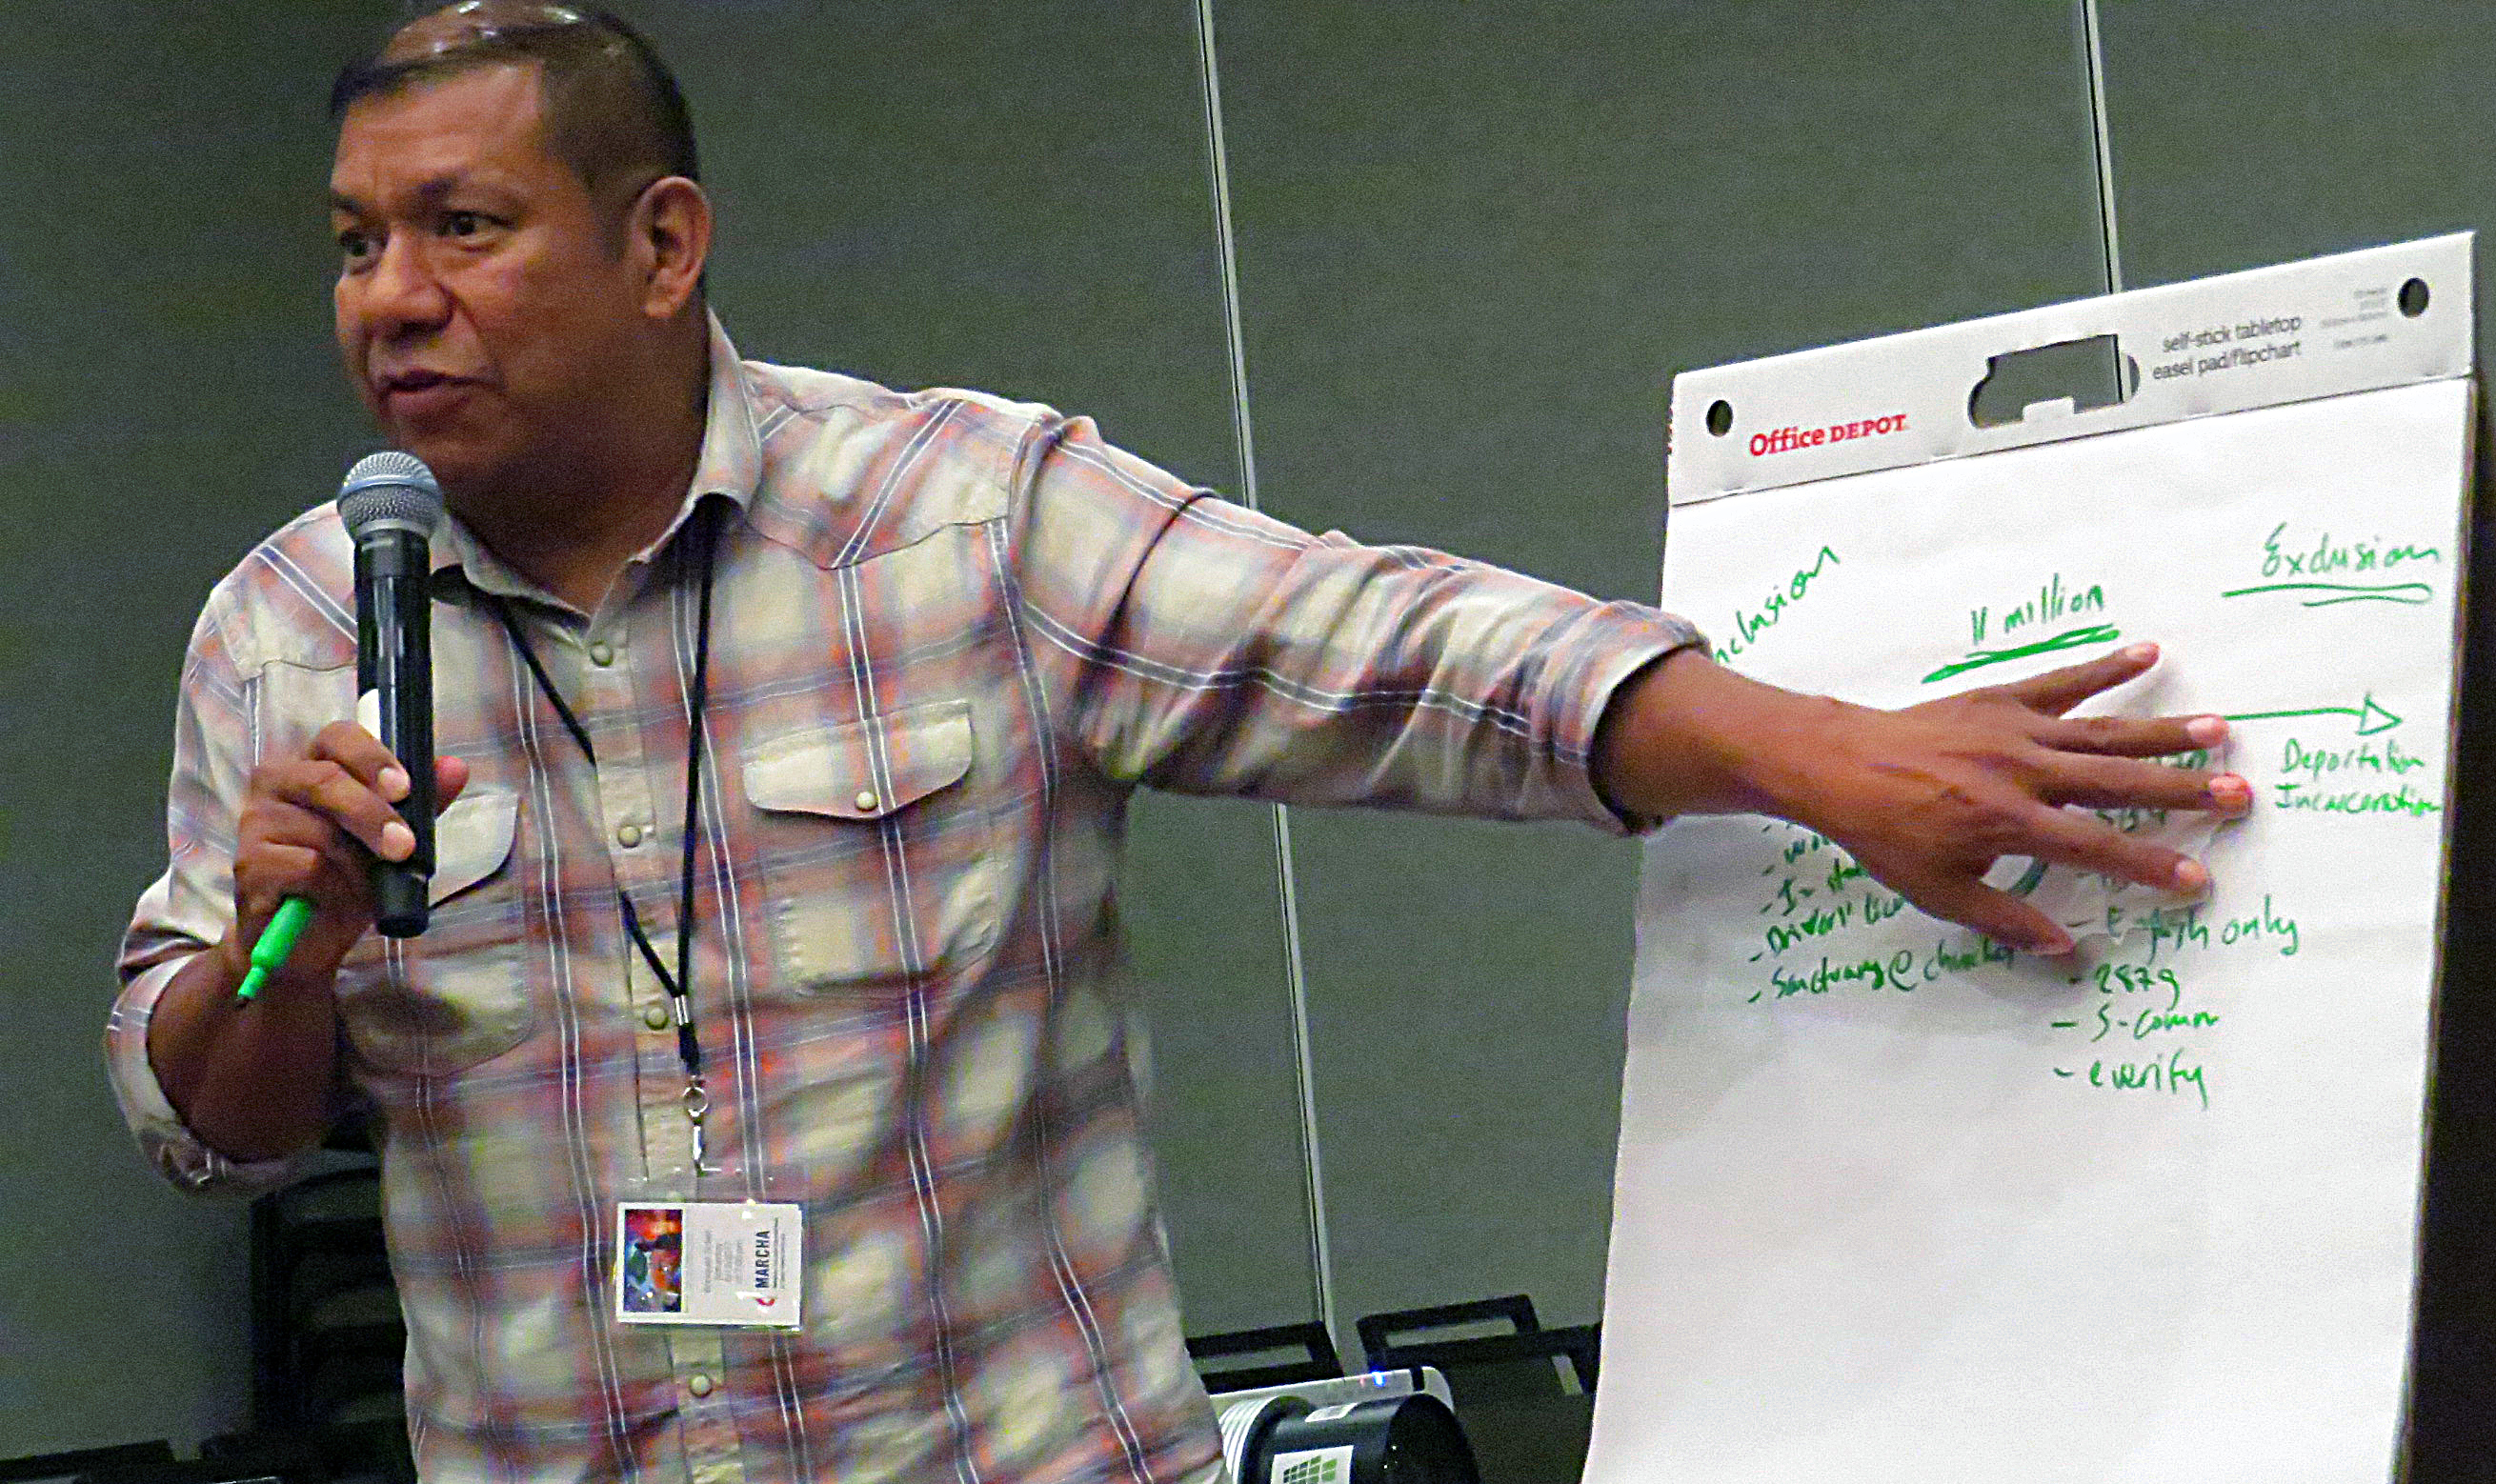 Pablo Alvarado, of the National Day Laborer Organizing Network, leads an Aug. 11 discussion on sanctuary at a Dallas meeting of MARCHA, the Hispanic/Latino caucus of The United Methodist Church. Photo by Sam Hodges, UMNS.